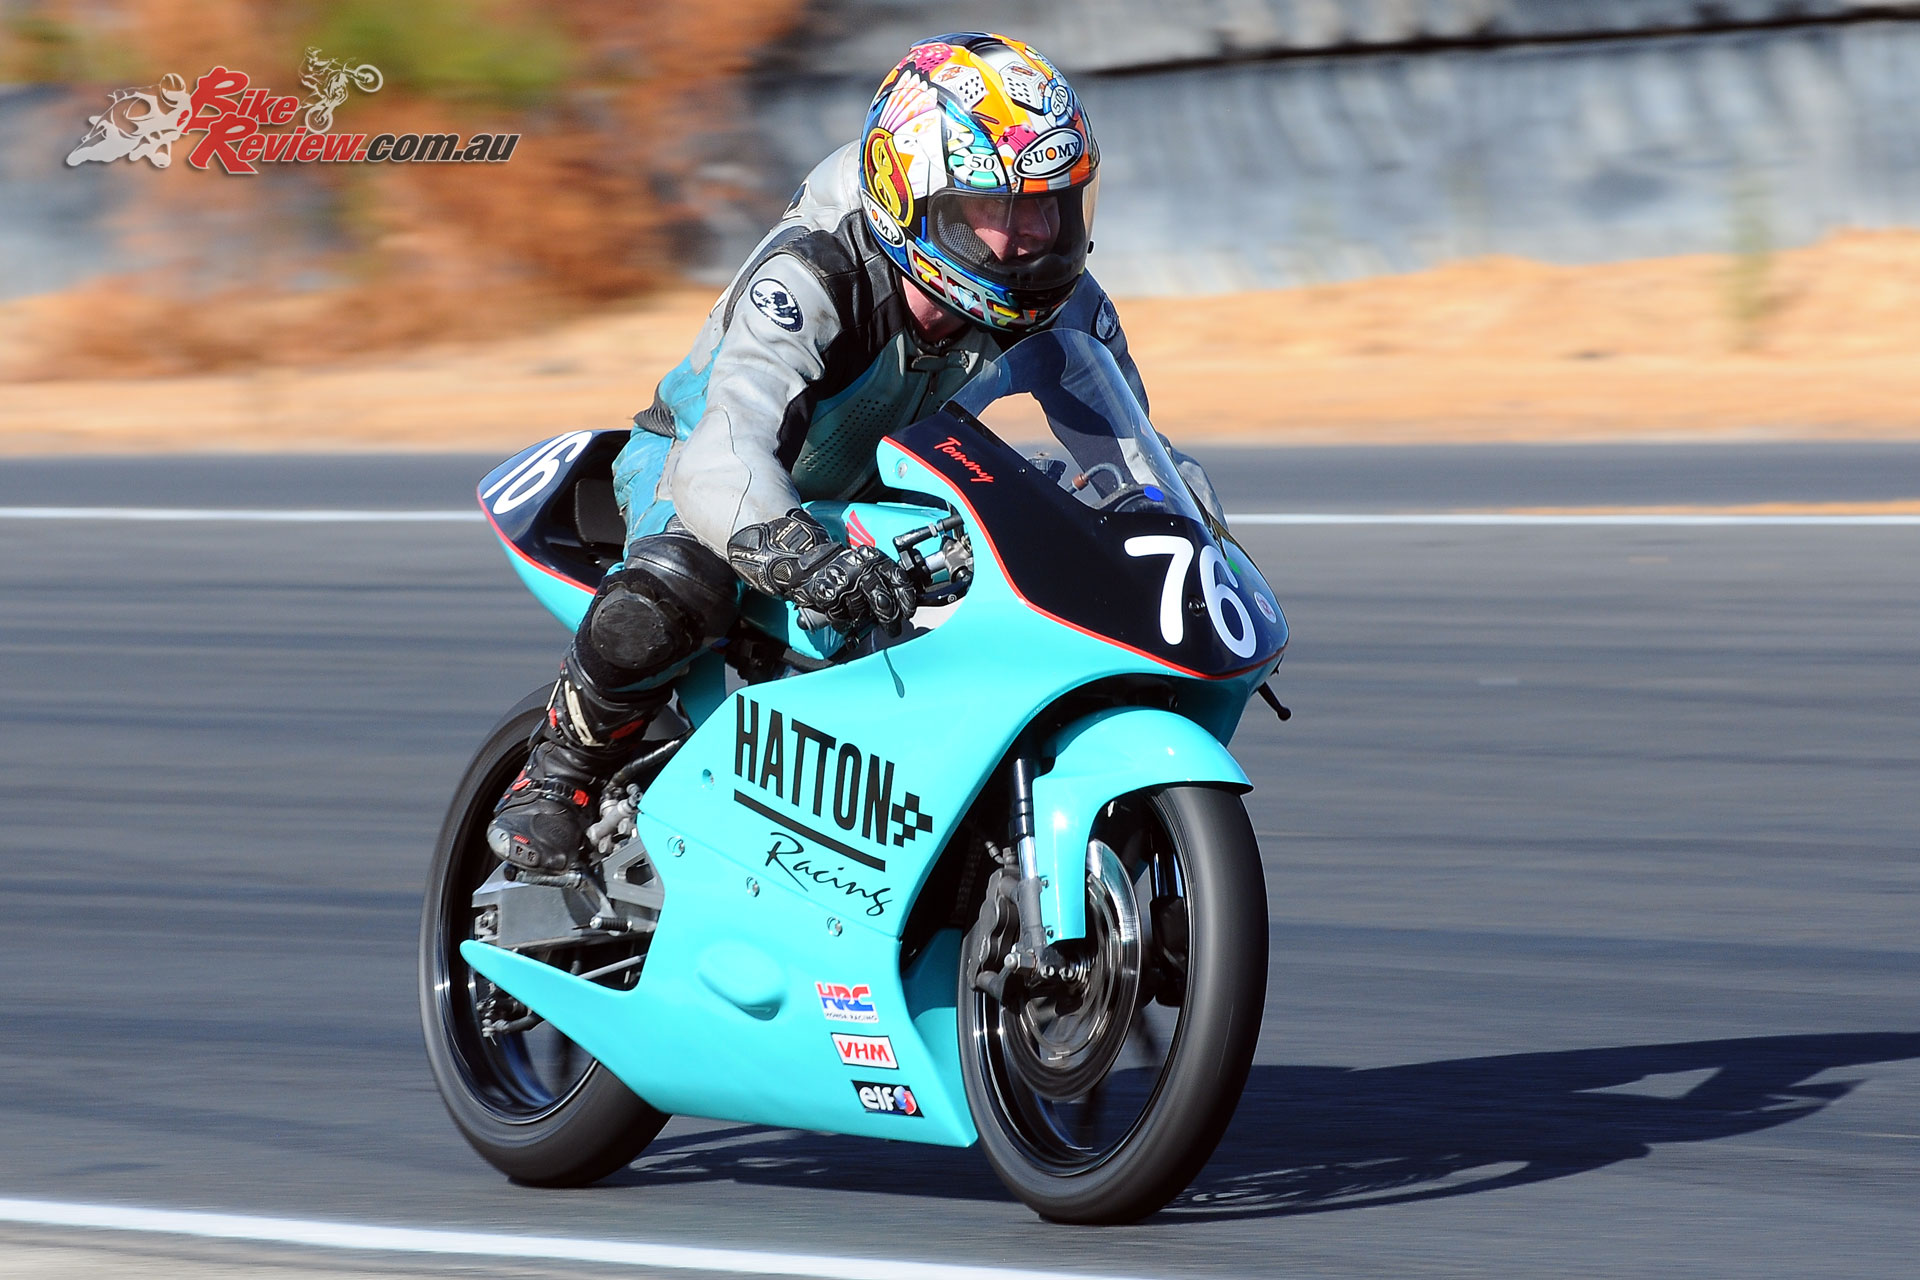 Tom Hatton won the 125GP with two race wins